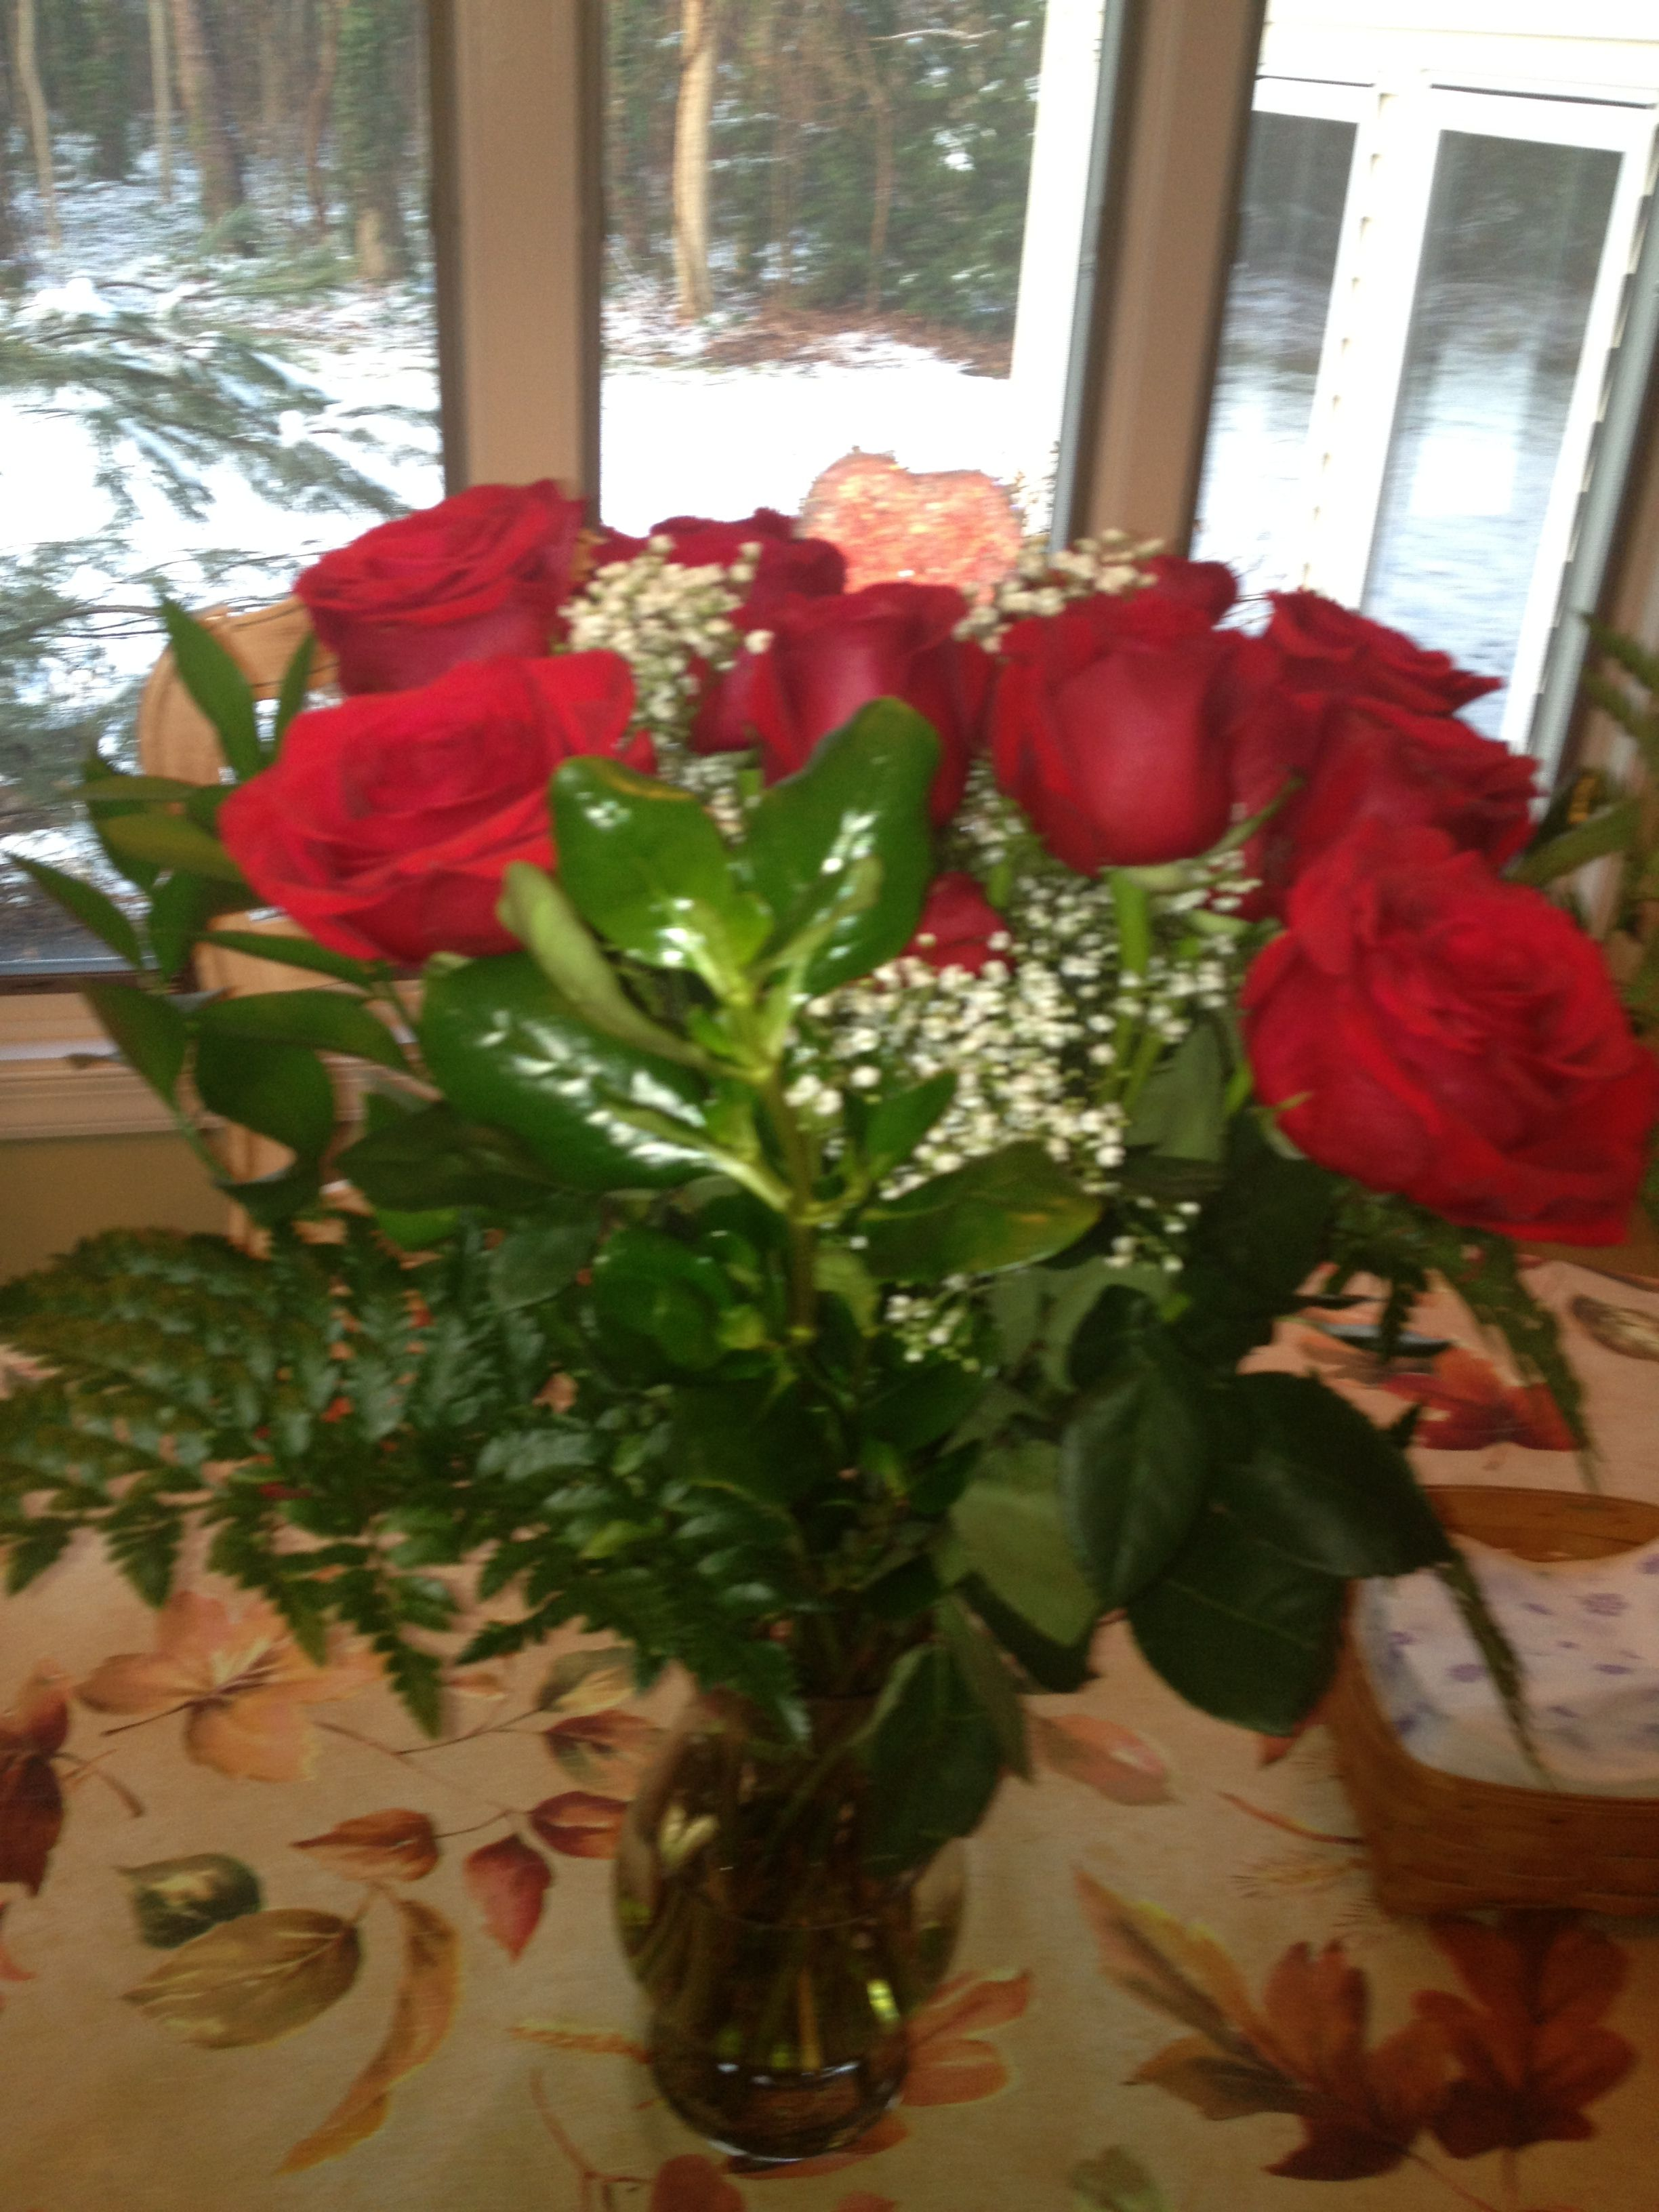 Roses for valentines day